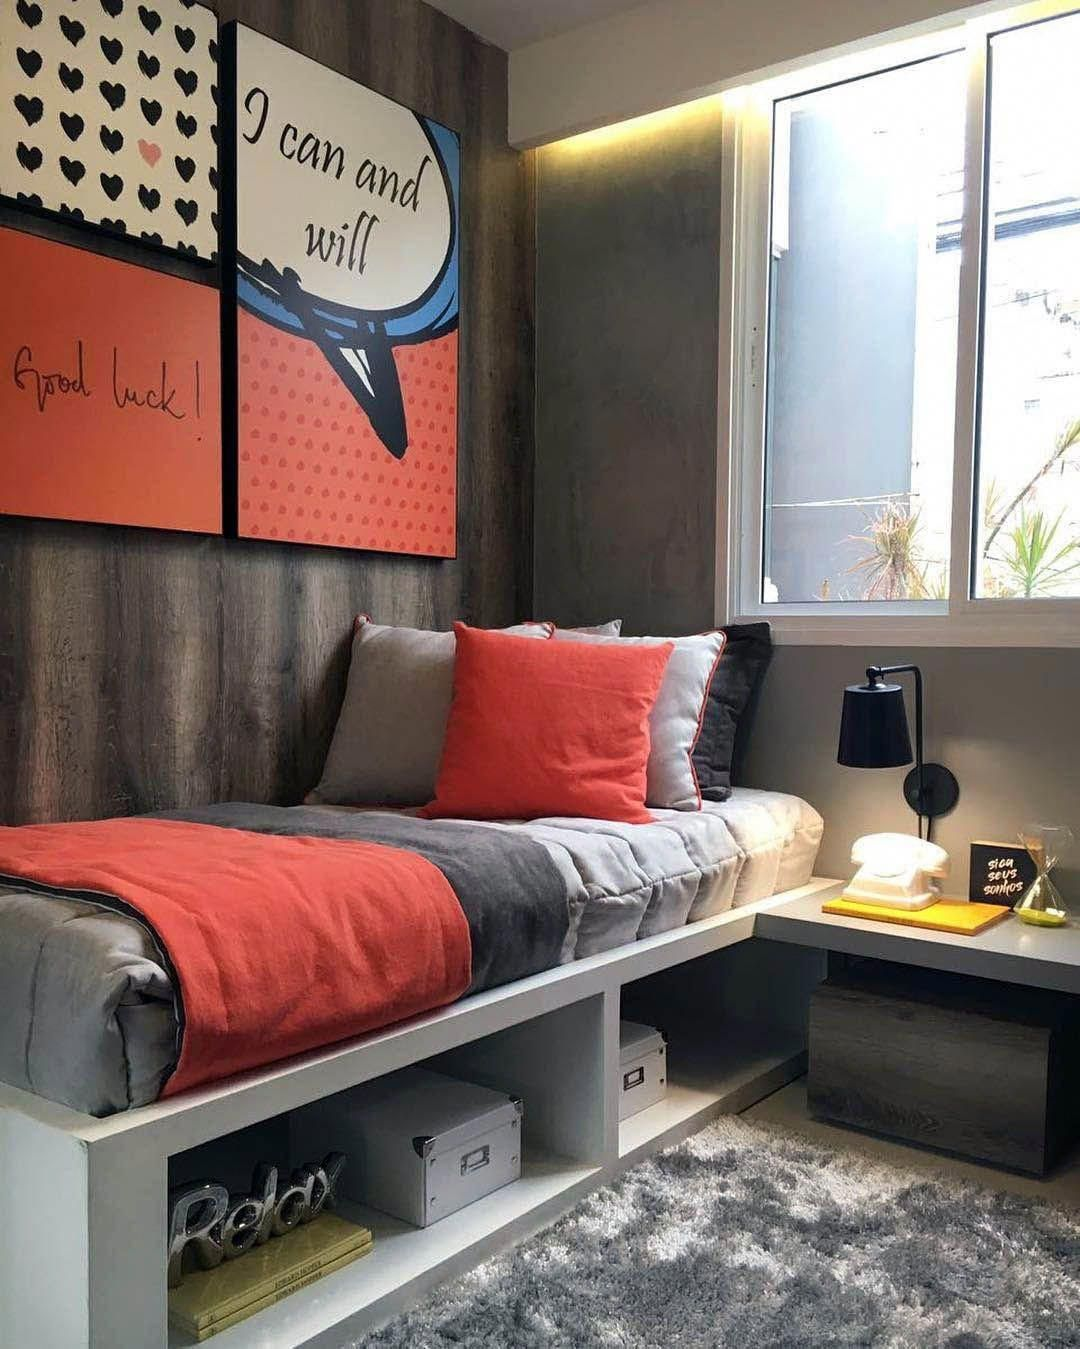 Lovely Childrens Bedroom Storage Ideas Pinterest To Refresh Your Home Kidsbedroomideas In 2020 Minimalist Bedroom Modern Bedroom Childrens Bedroom Storage